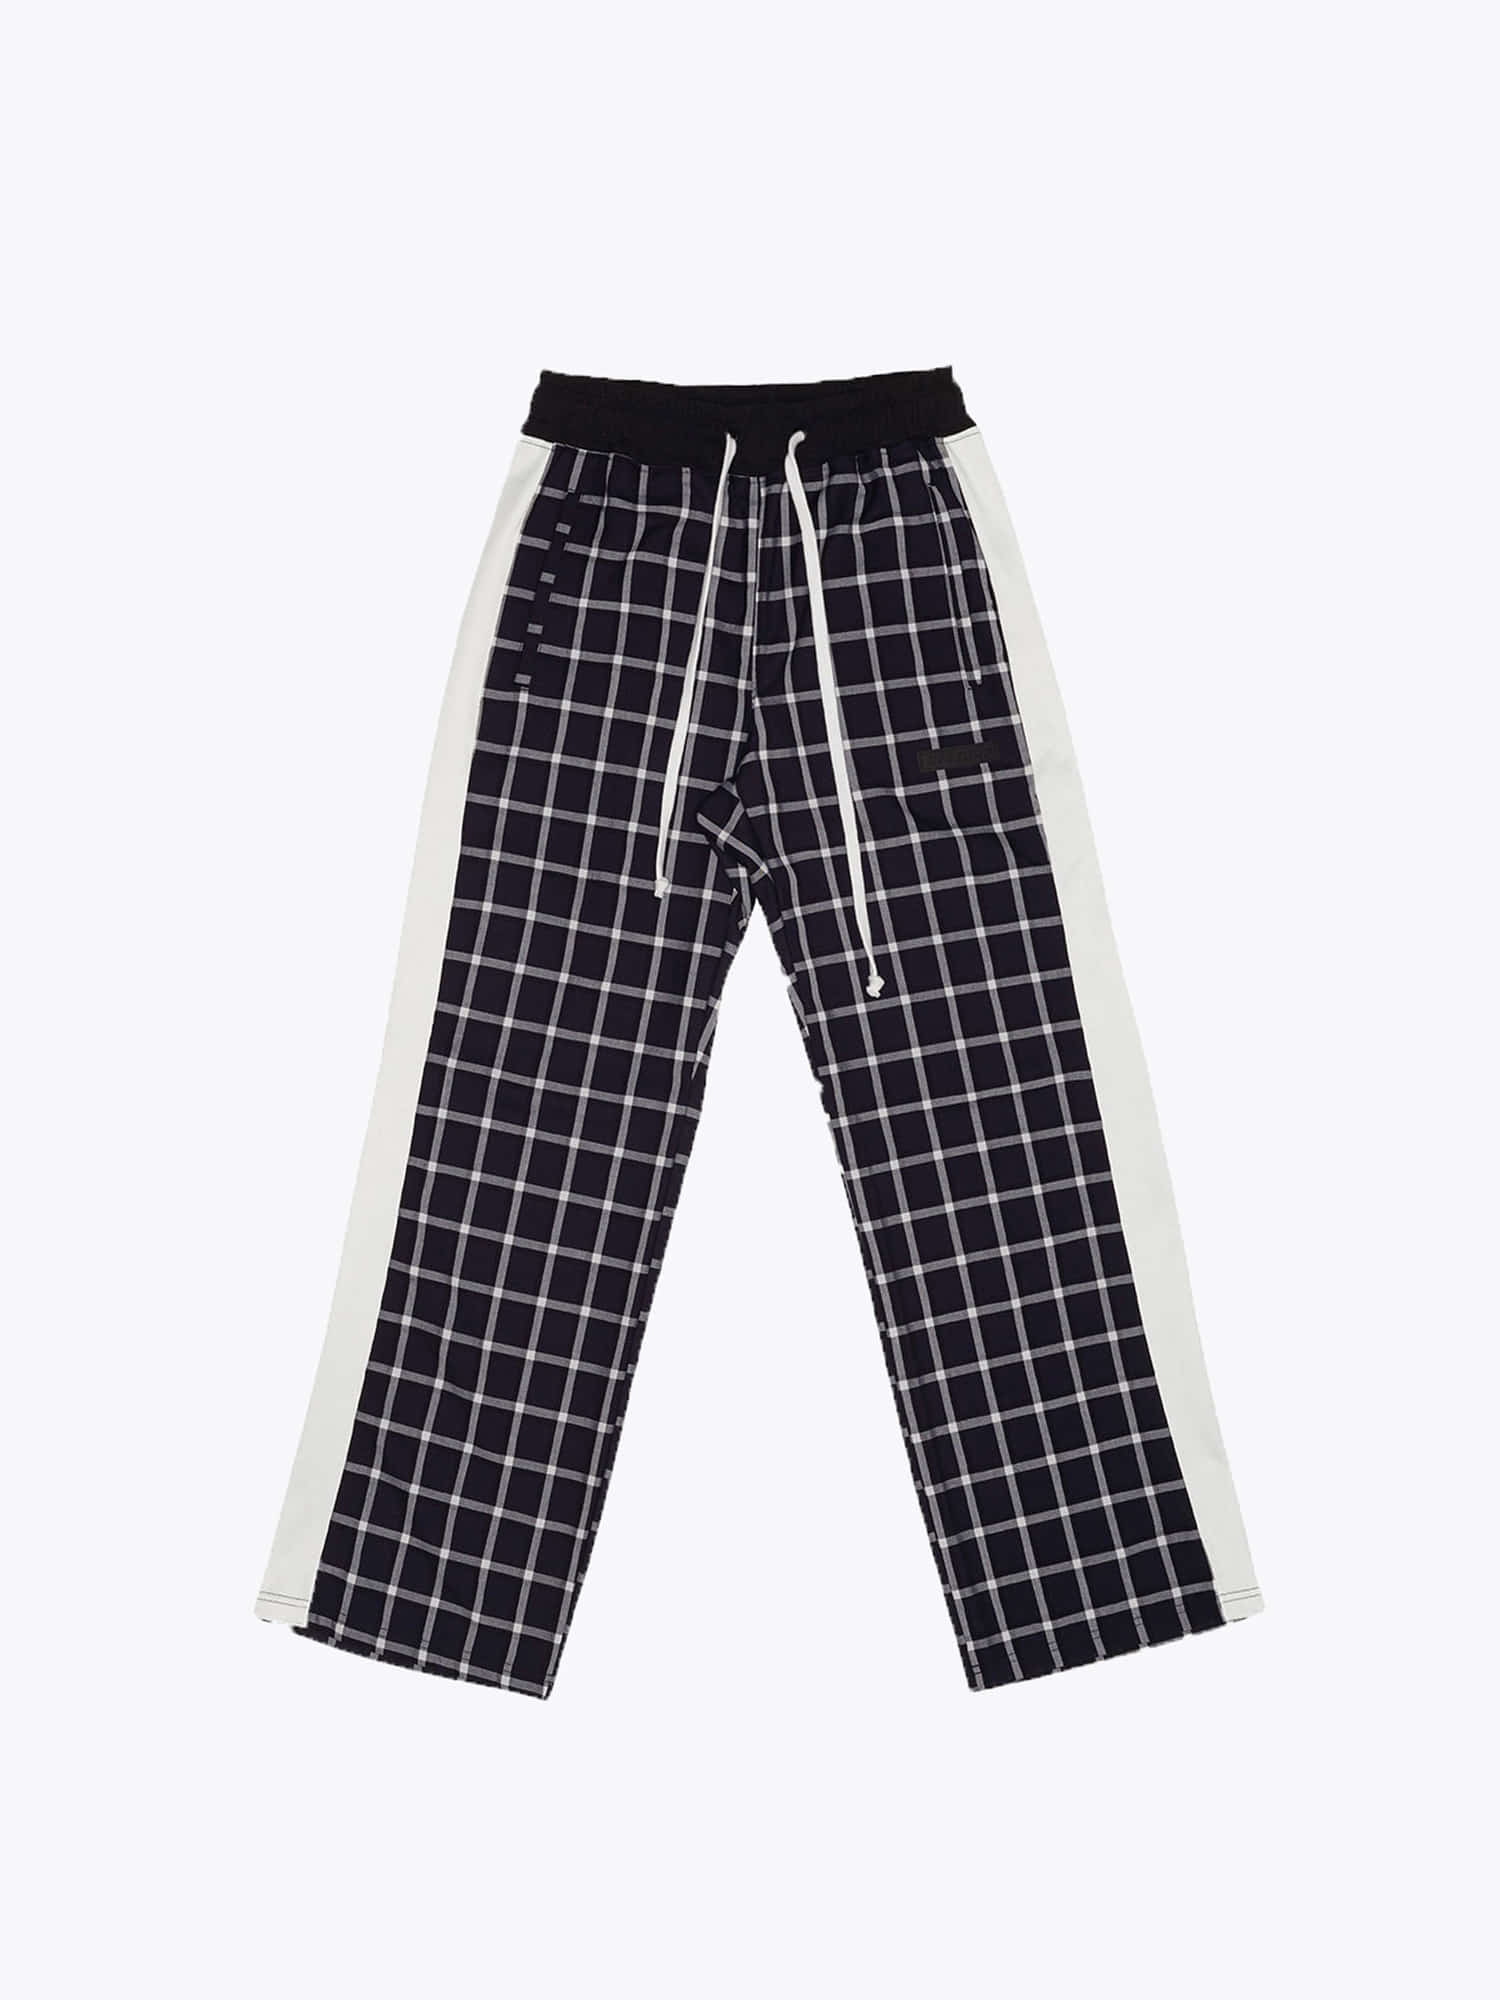 07 Check Track Pants - Navy/White